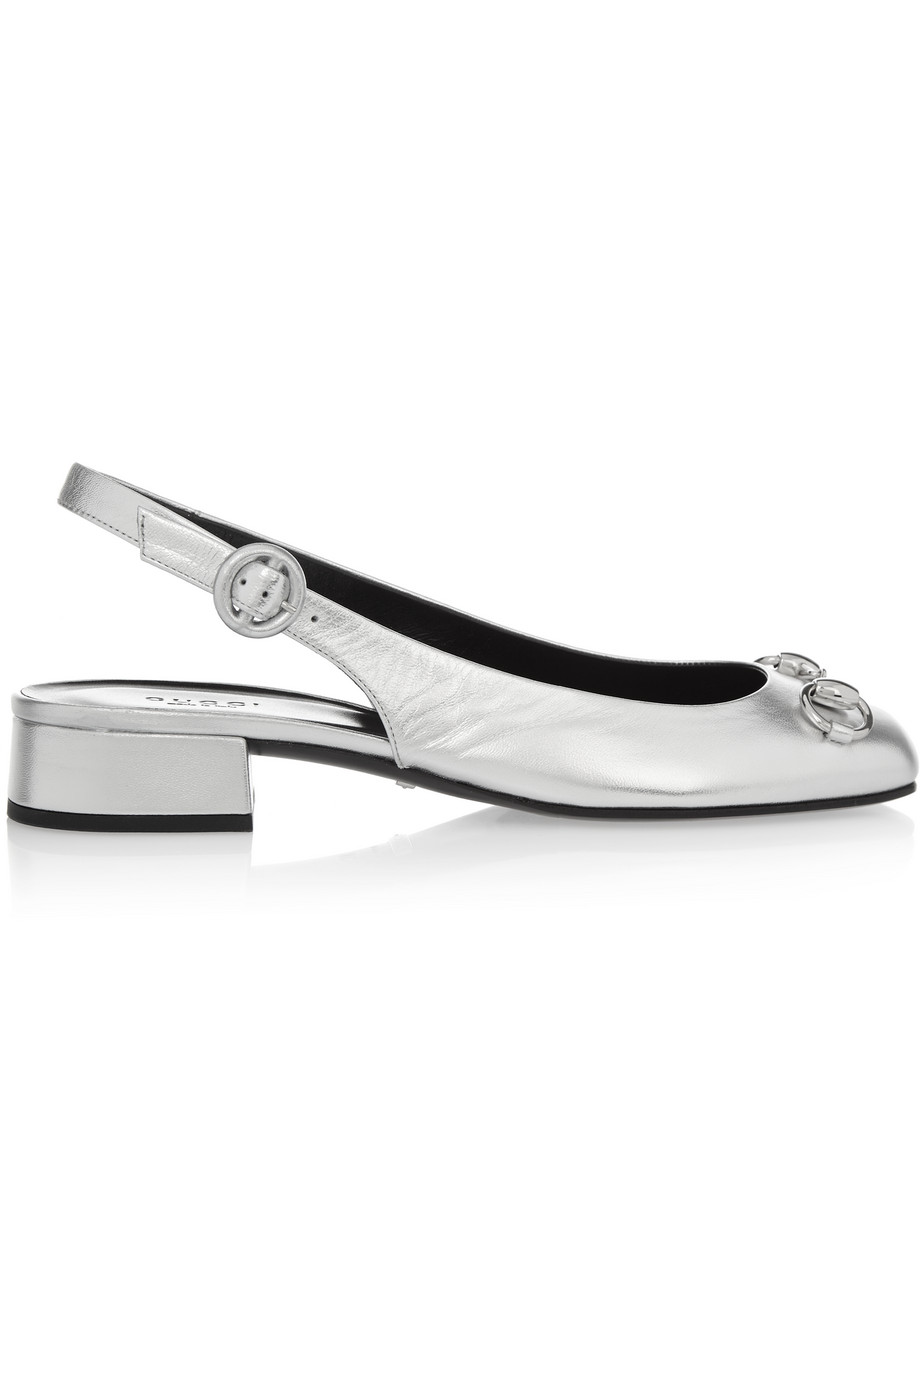 Gucci Horsebit-Detailed Metallic Leather Slingback Flats, Silver, Women's US Size: 8.5, Size: 39